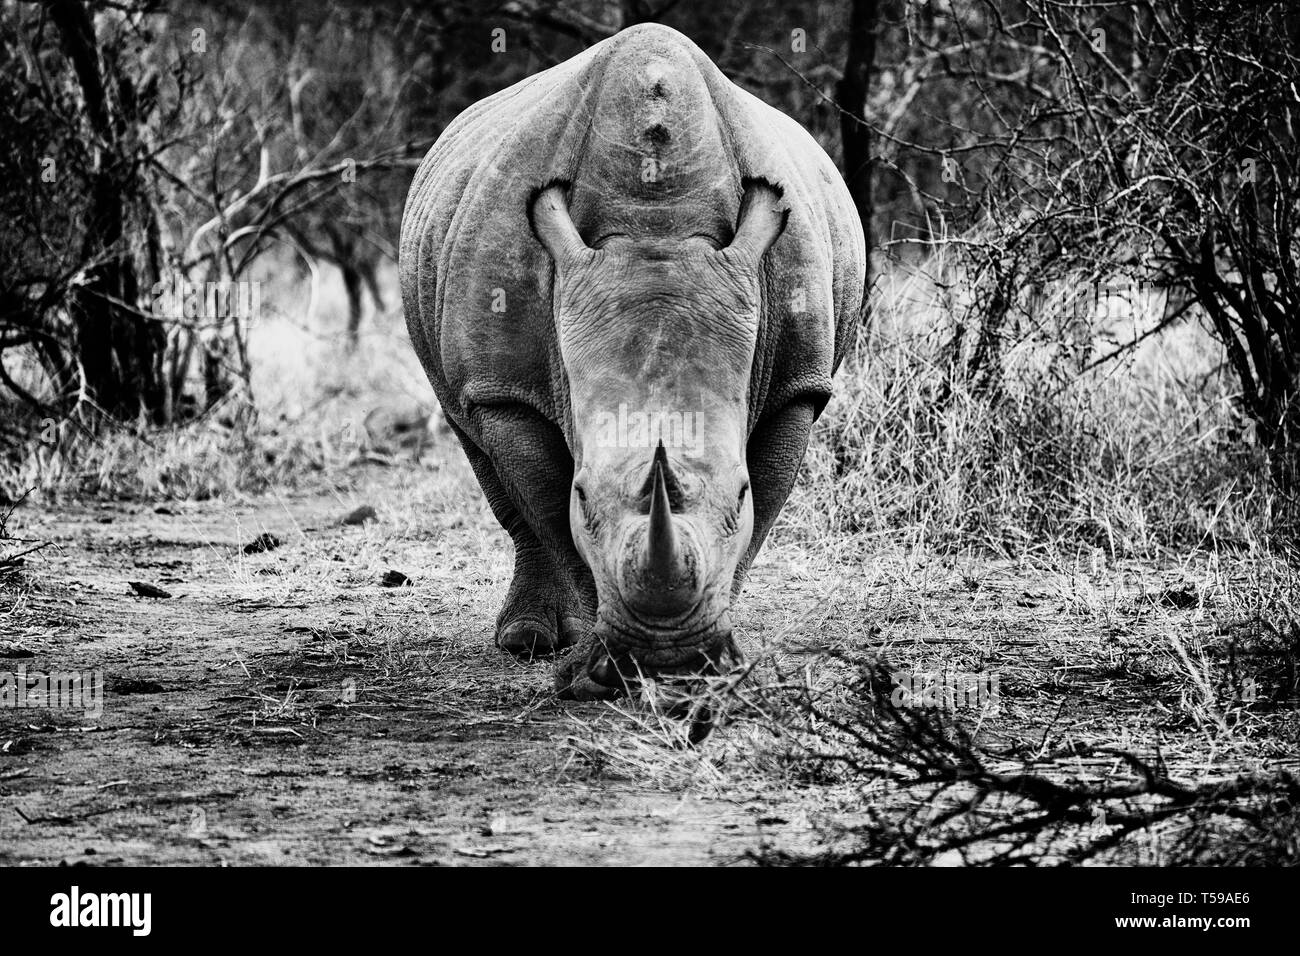 Rhino looking at you, just before the charge. Horns and symmetries. Black and white photography. - Stock Image